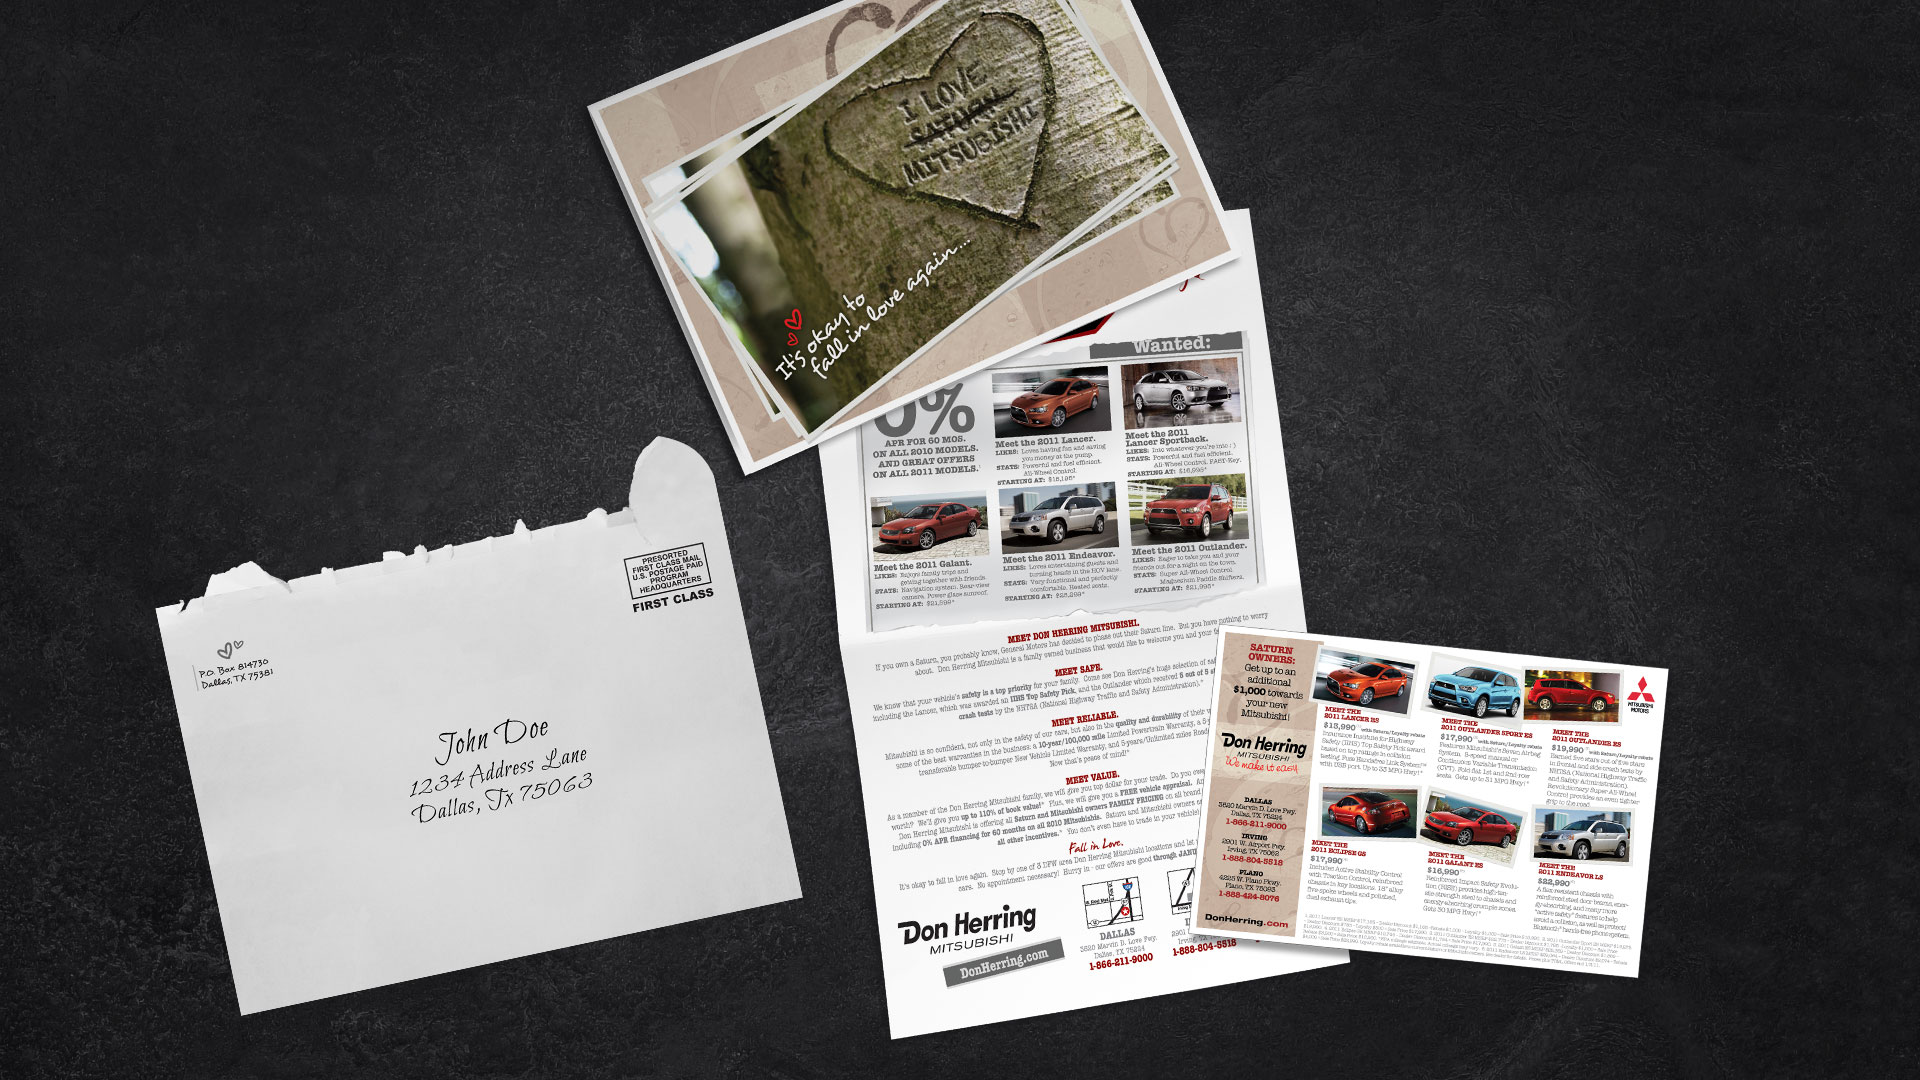 Direct Mail: Don Herring Mitsubishi Fall in Love Again